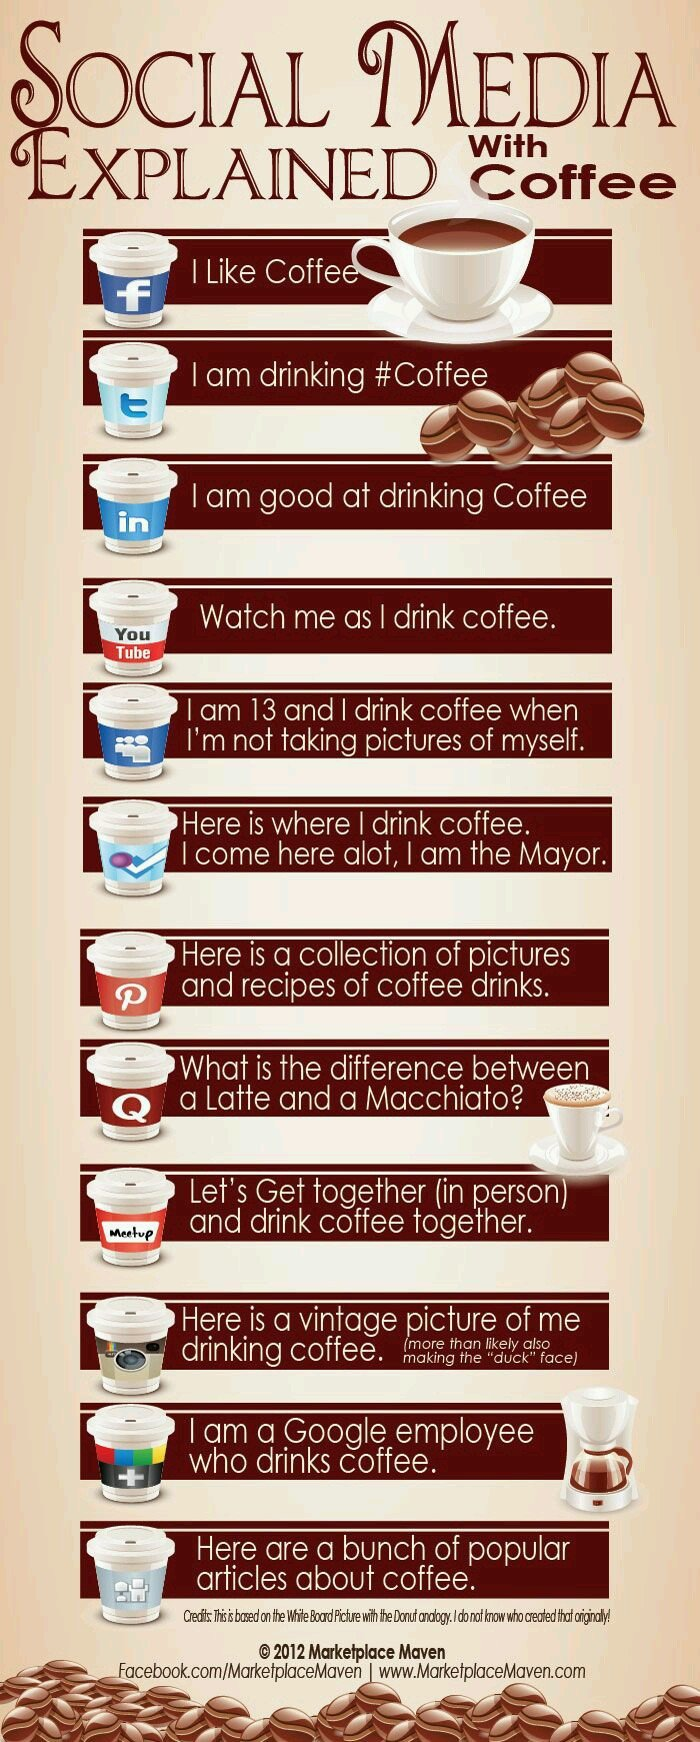 Social media explained with coffee #Infographic